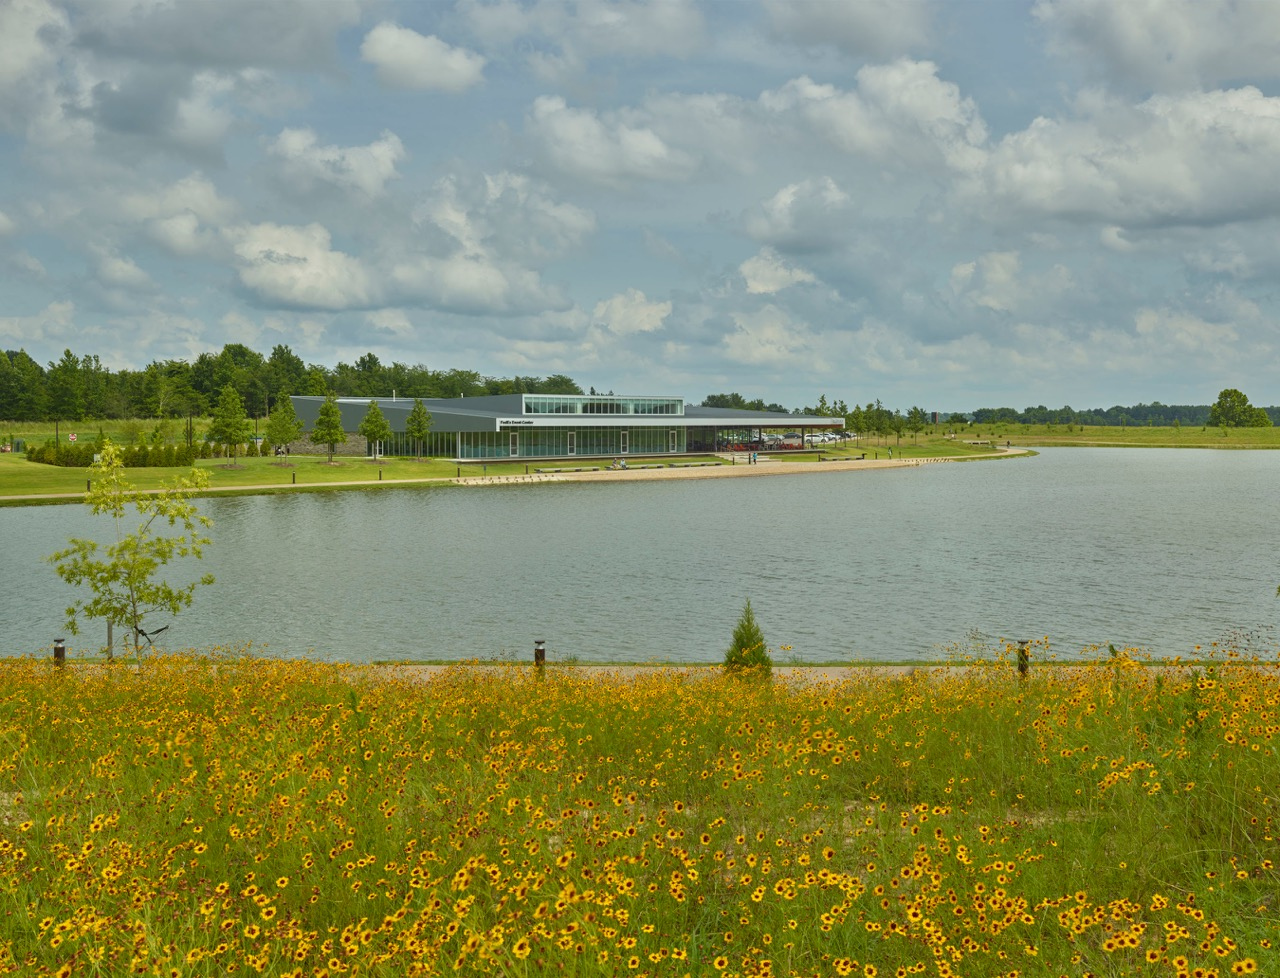 The First Tennessee Foundation Visitors Center at Shelby Farms Park